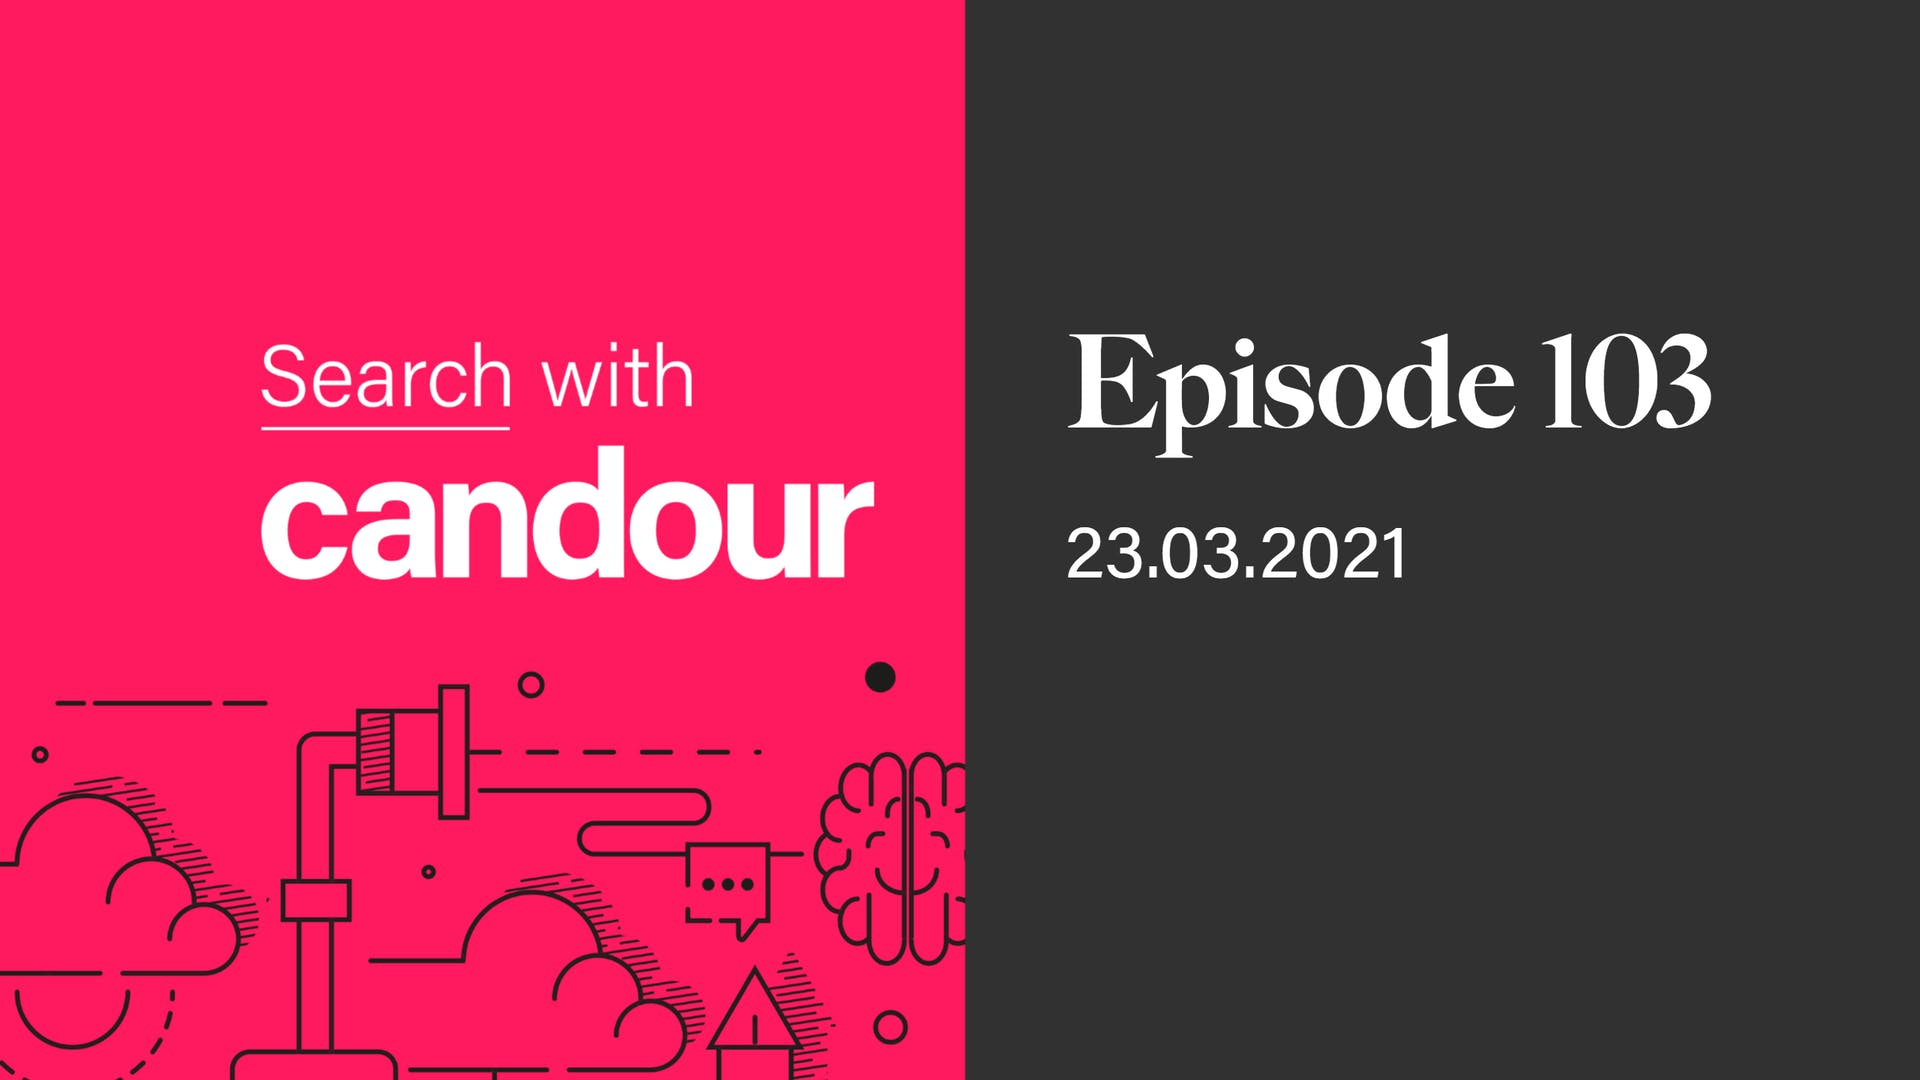 Search with Candour - Episode 103